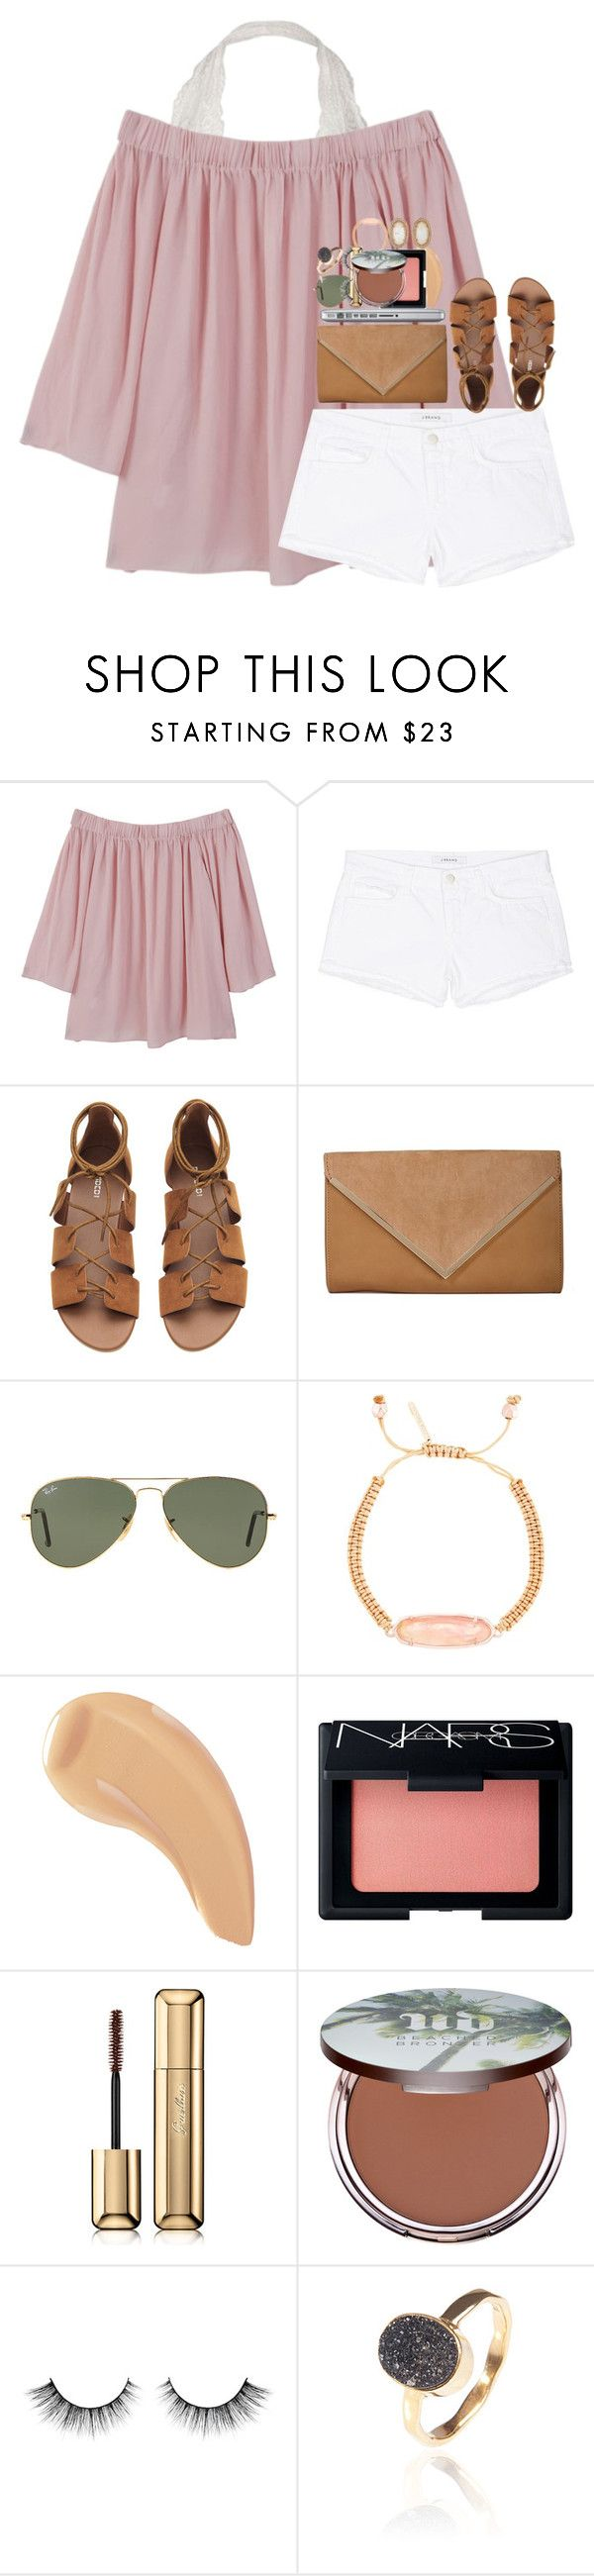 """""""coming up with captions is the worst"""" by hmcdaniel01 ❤ liked on Polyvore featuring MANGO, J Brand, Ray-Ban, Kendra Scott, NARS Cosmetics, Guerlain, Urban Decay and Latelita"""